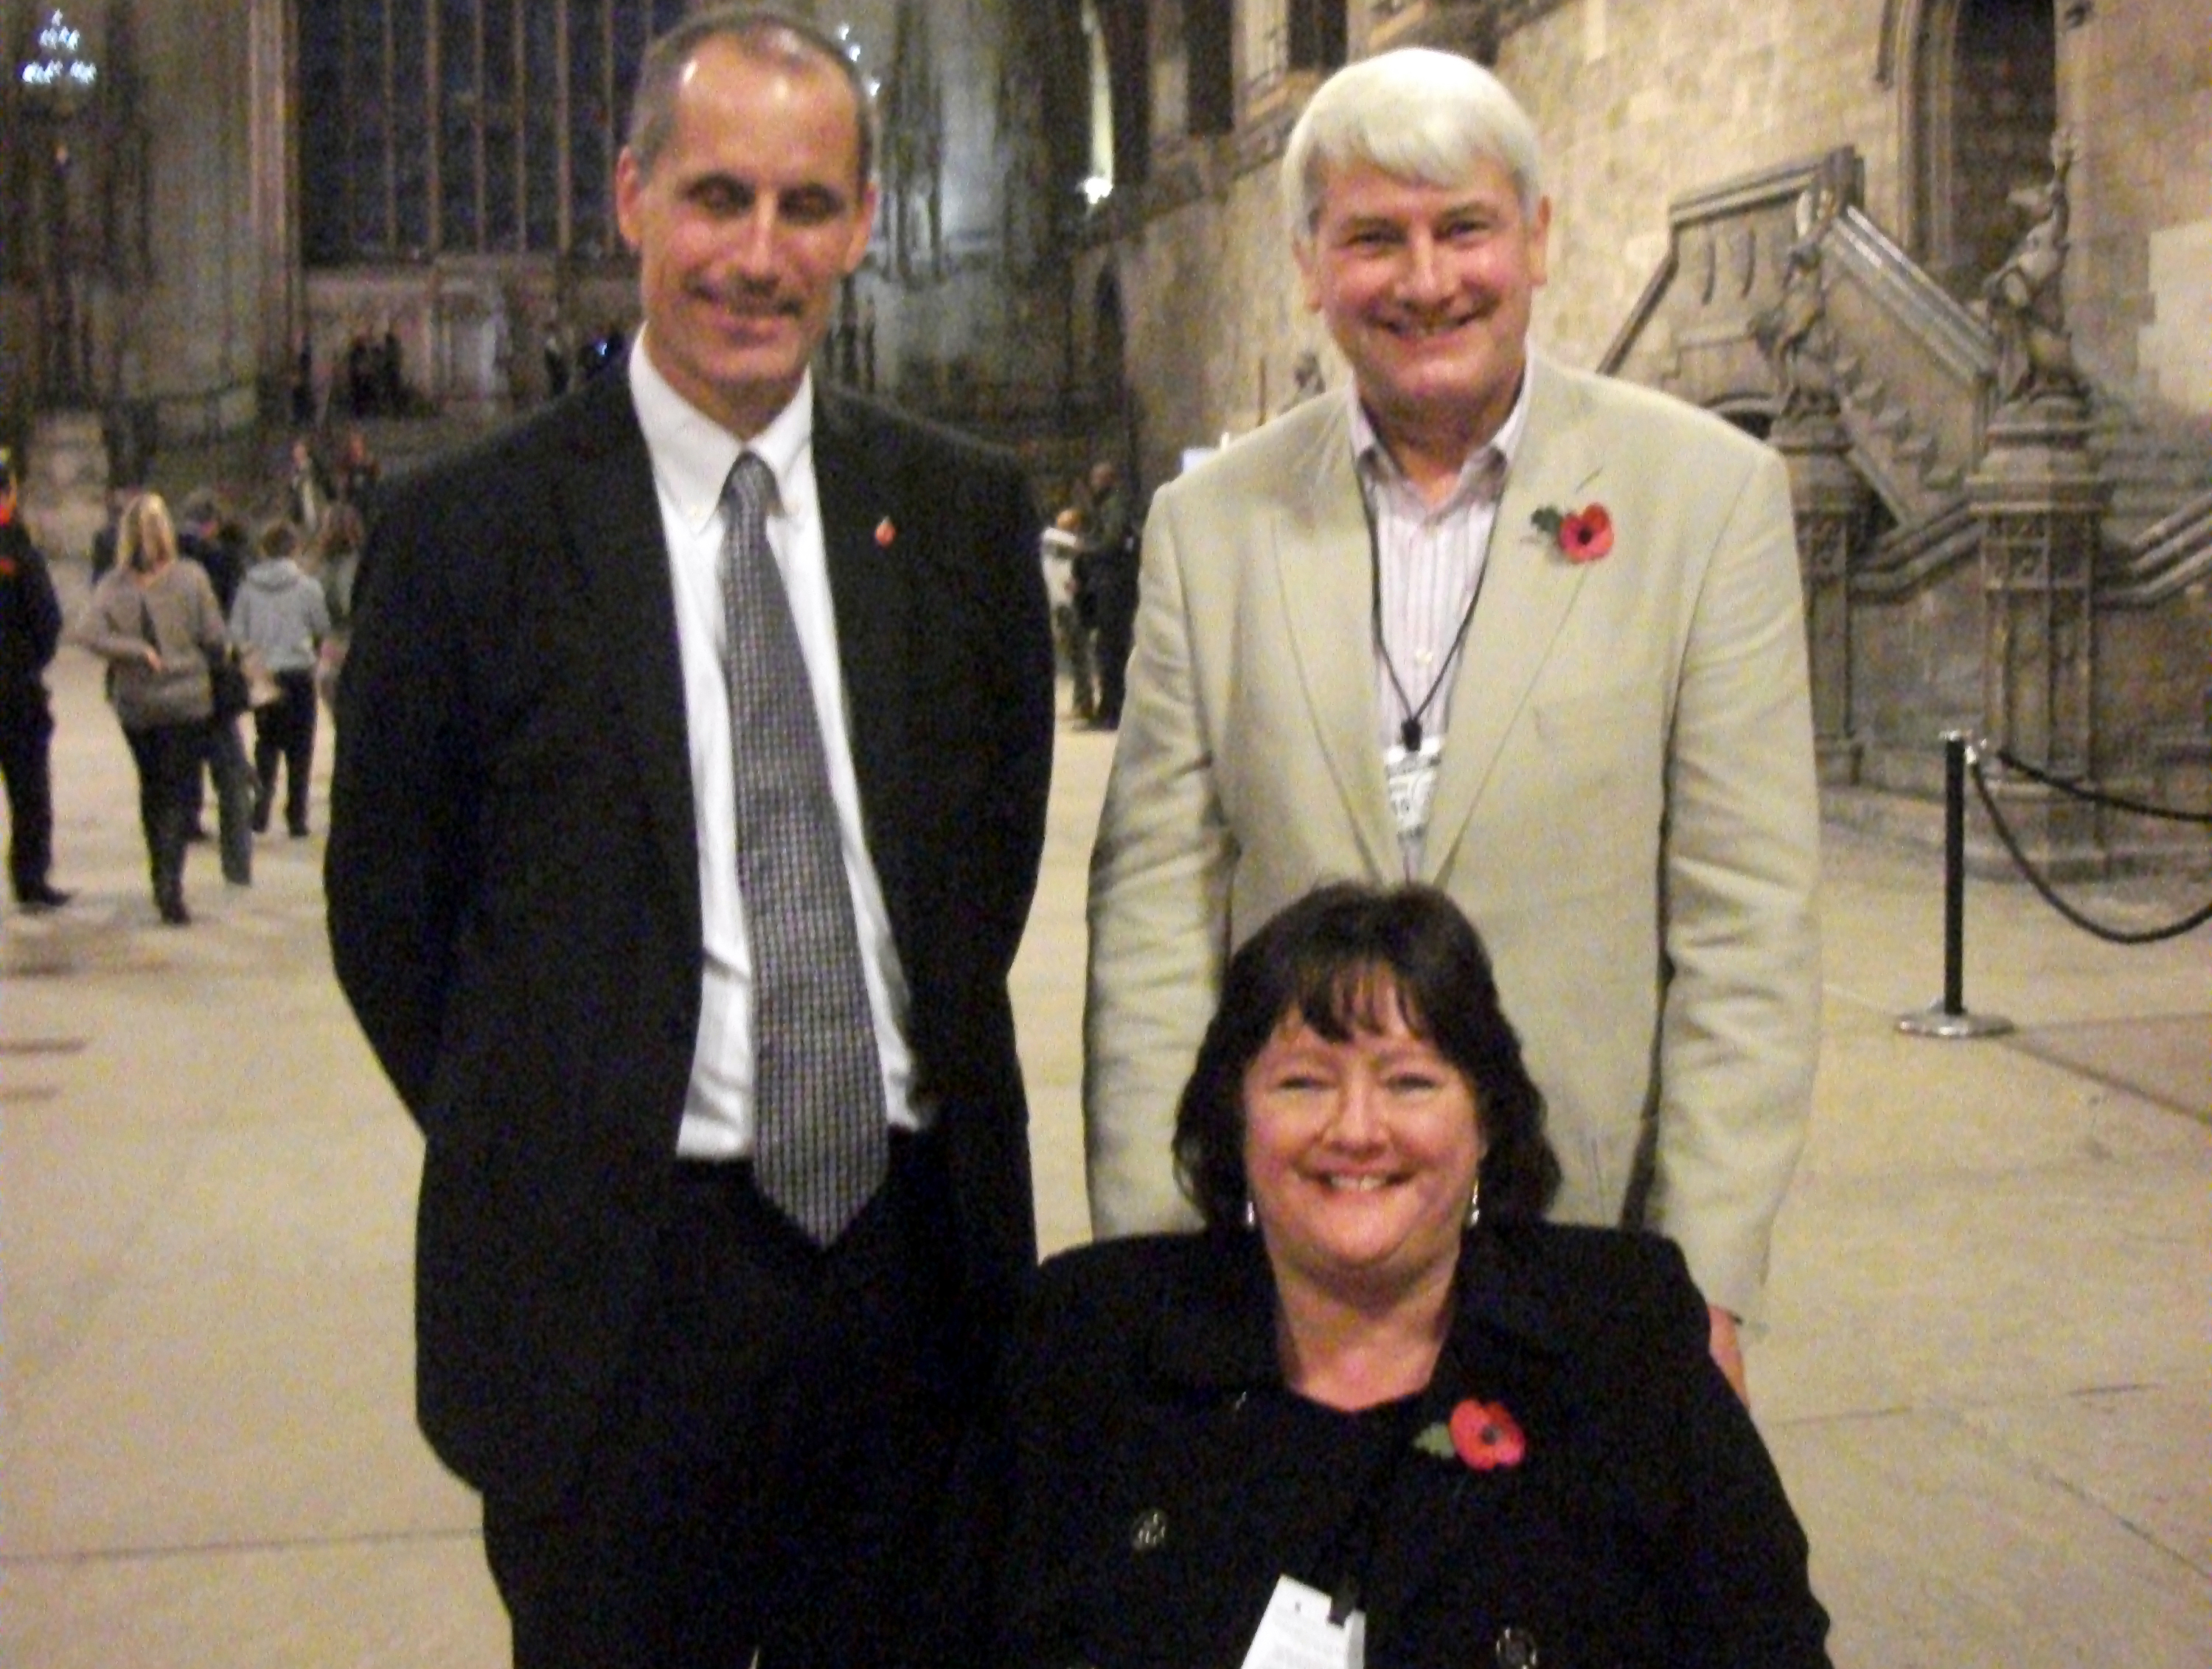 Sefton Central Labour MP Bill Esterson with Susan and Stephen Handley who visited Parliament to promote the Be Clear on Cancer campaign.